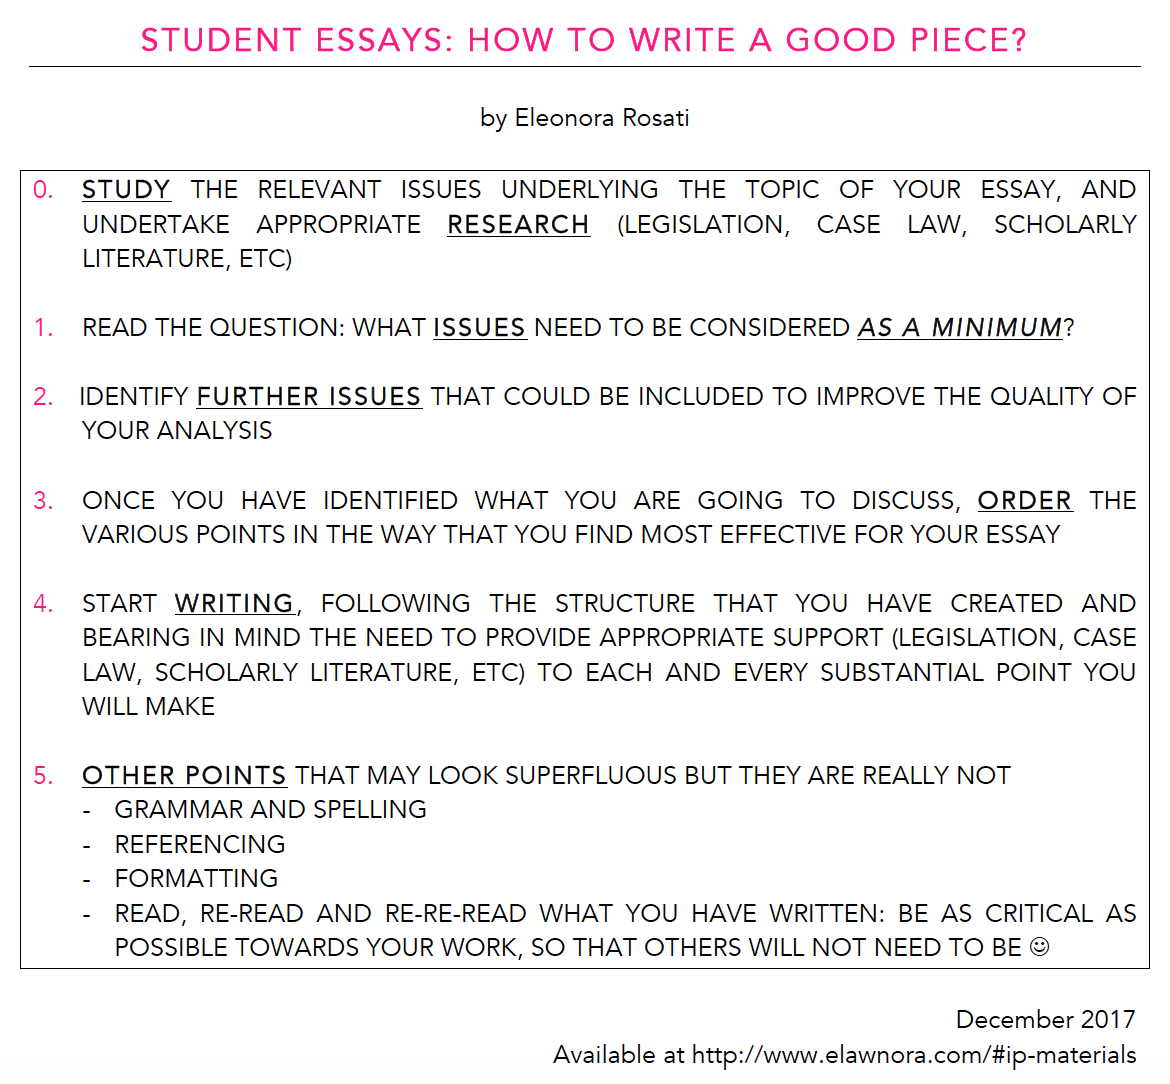 the ipkat student essays how to write a good piece  how can the checklist be applied in practice though